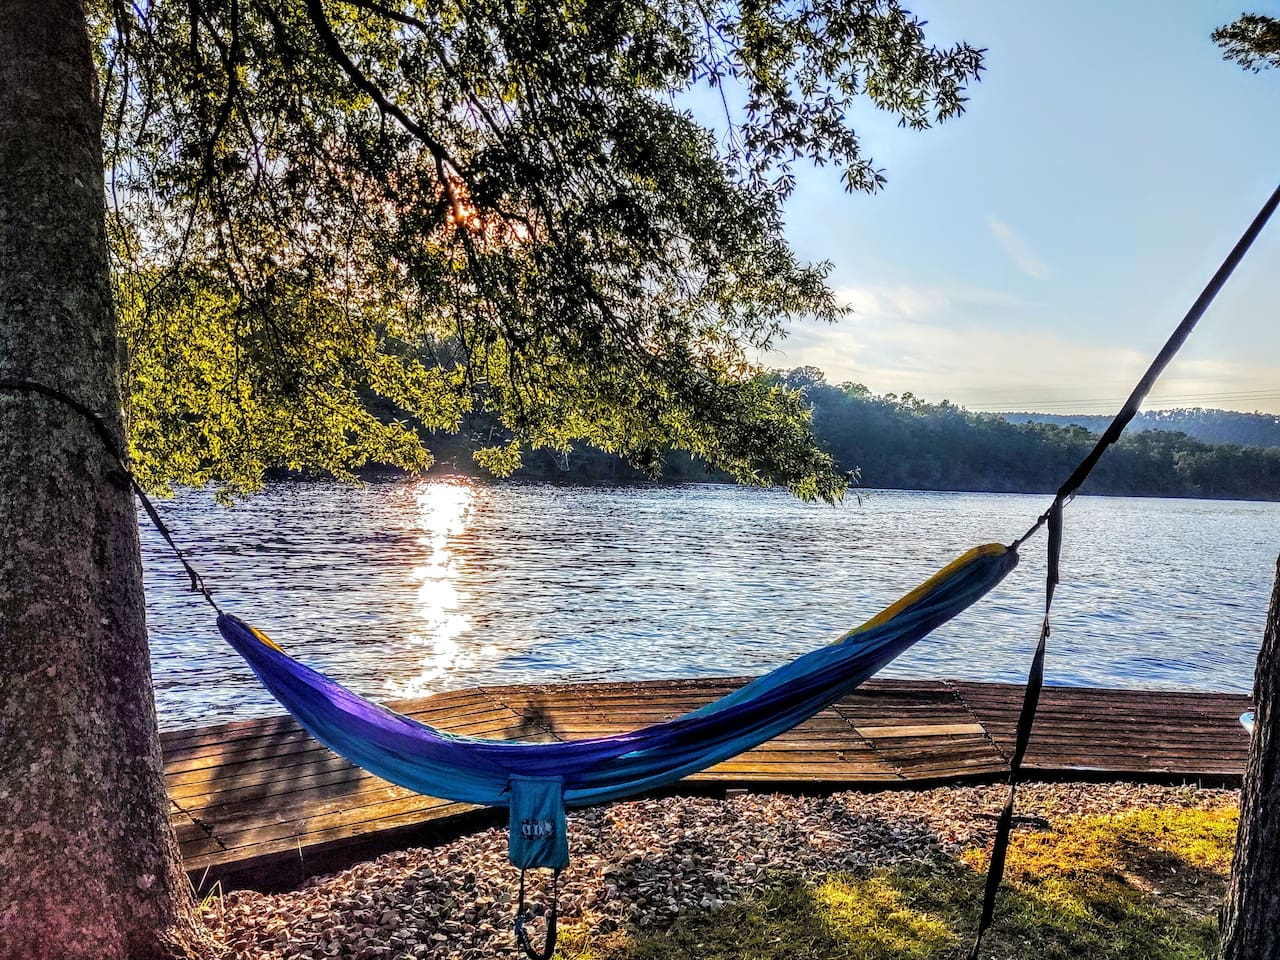 A hammock for two is perfect to rest and relax —  enjoy the cool breeze off the lake — it's the perfect way to end the day!